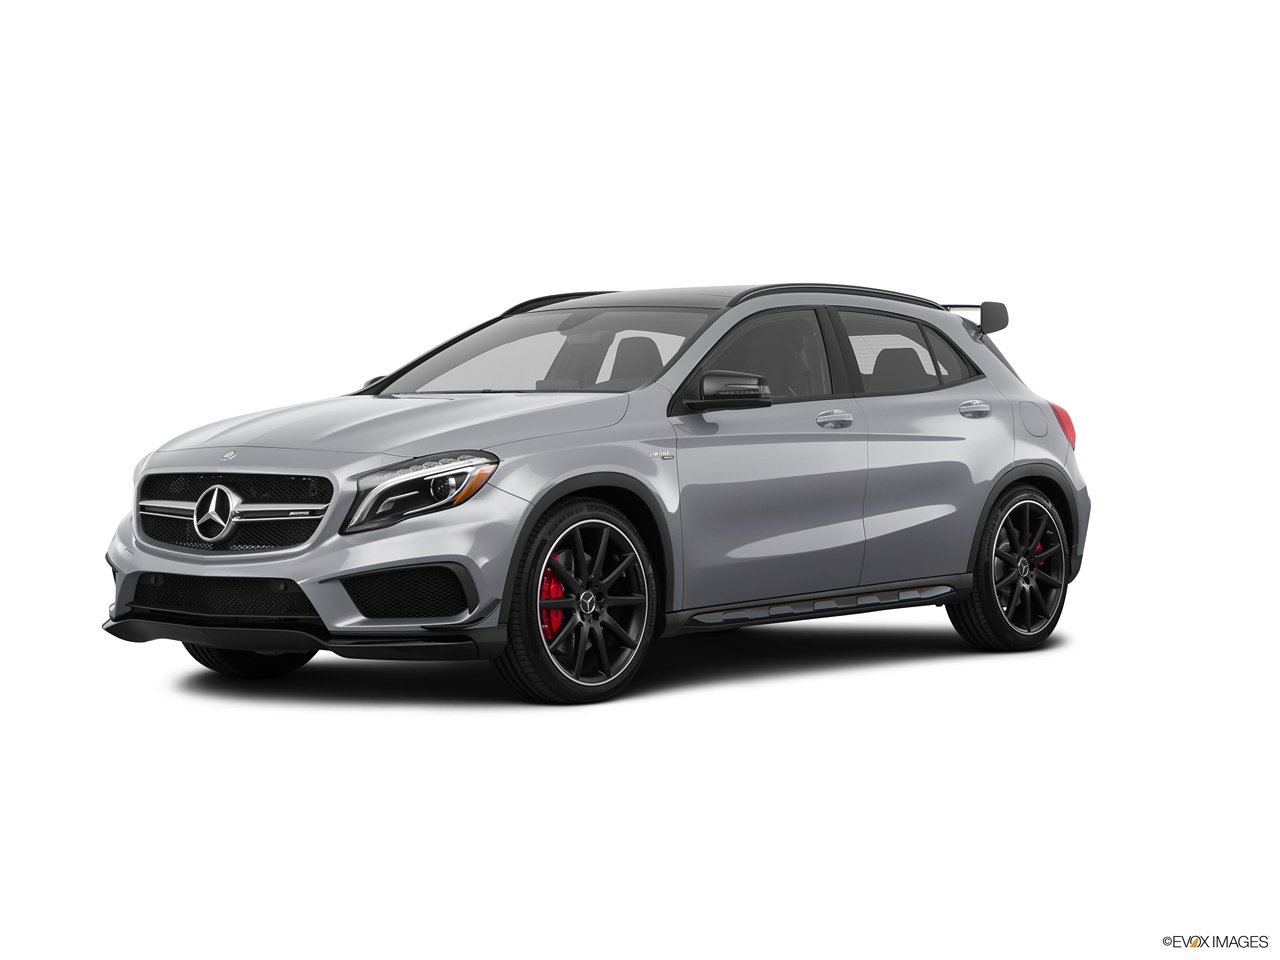 Mercedes benz gla 2016 45 amg in uae new car prices for Mercedes benz dubai price